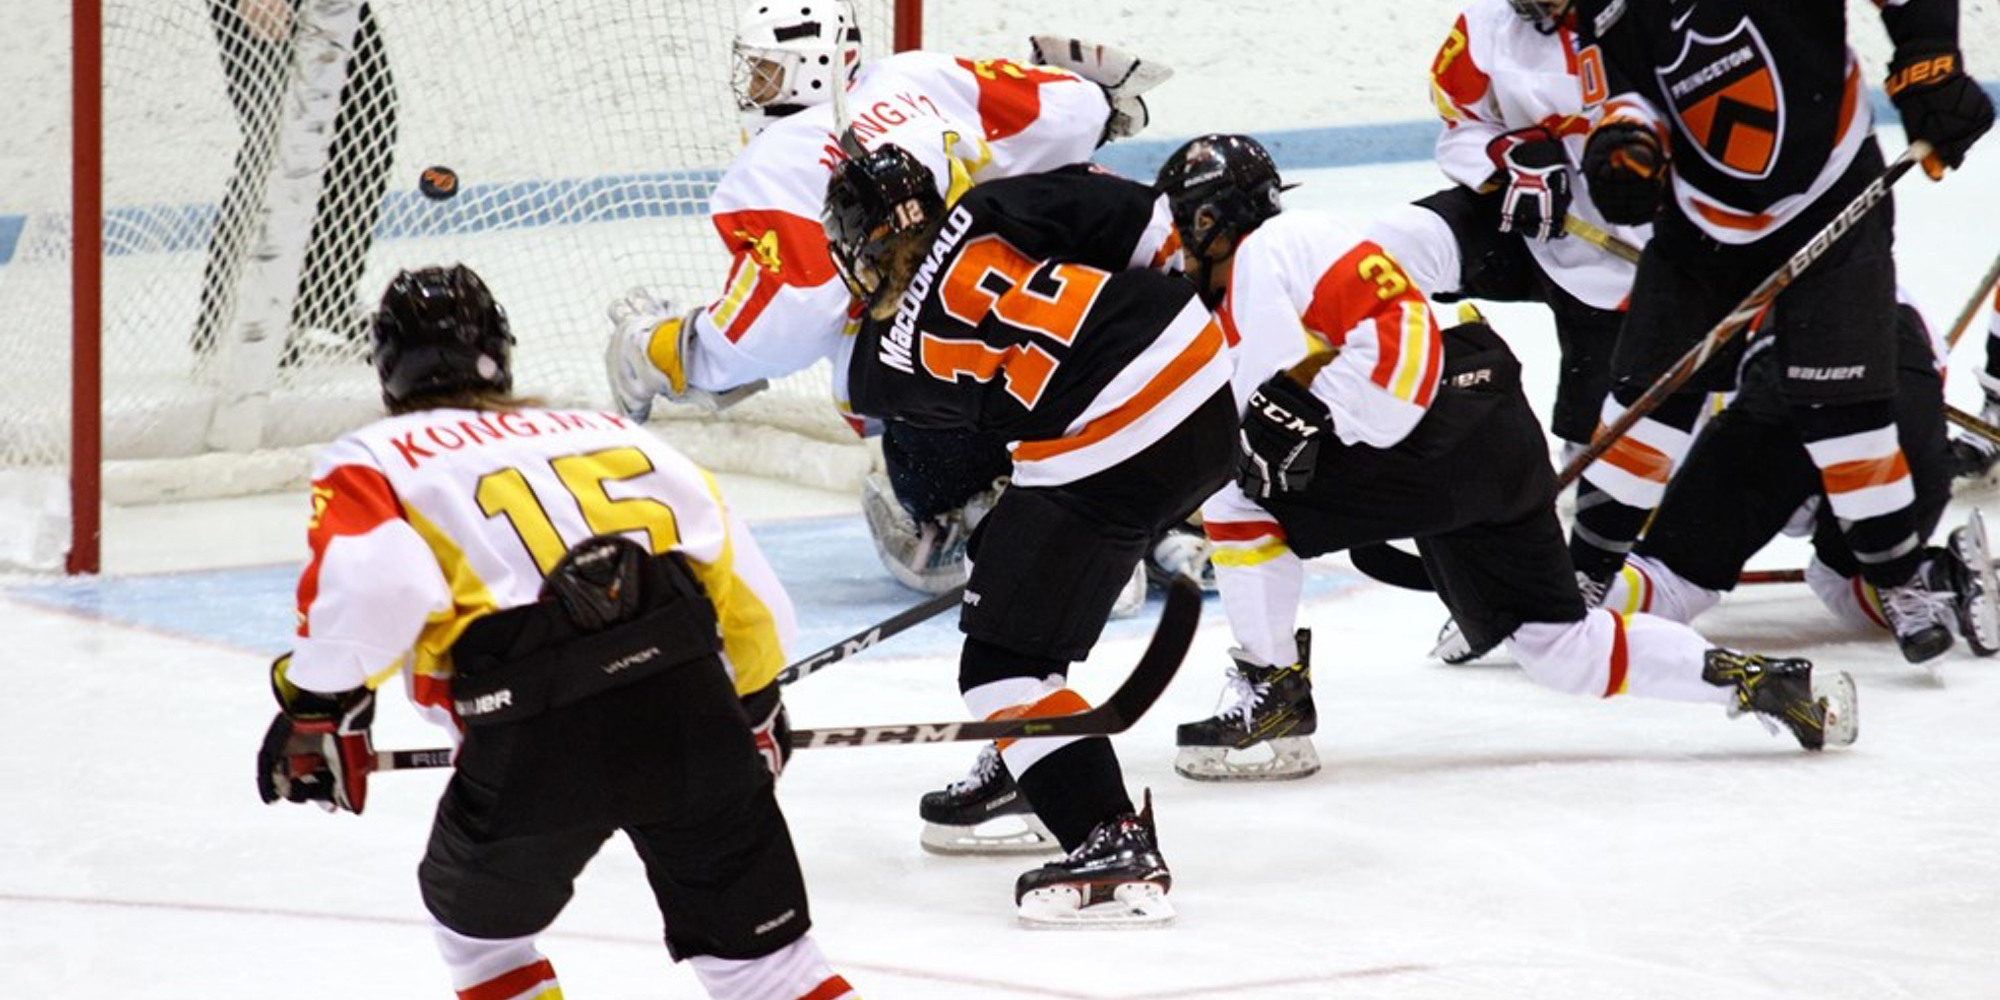 Princeton Posts Win over China in Exhibition